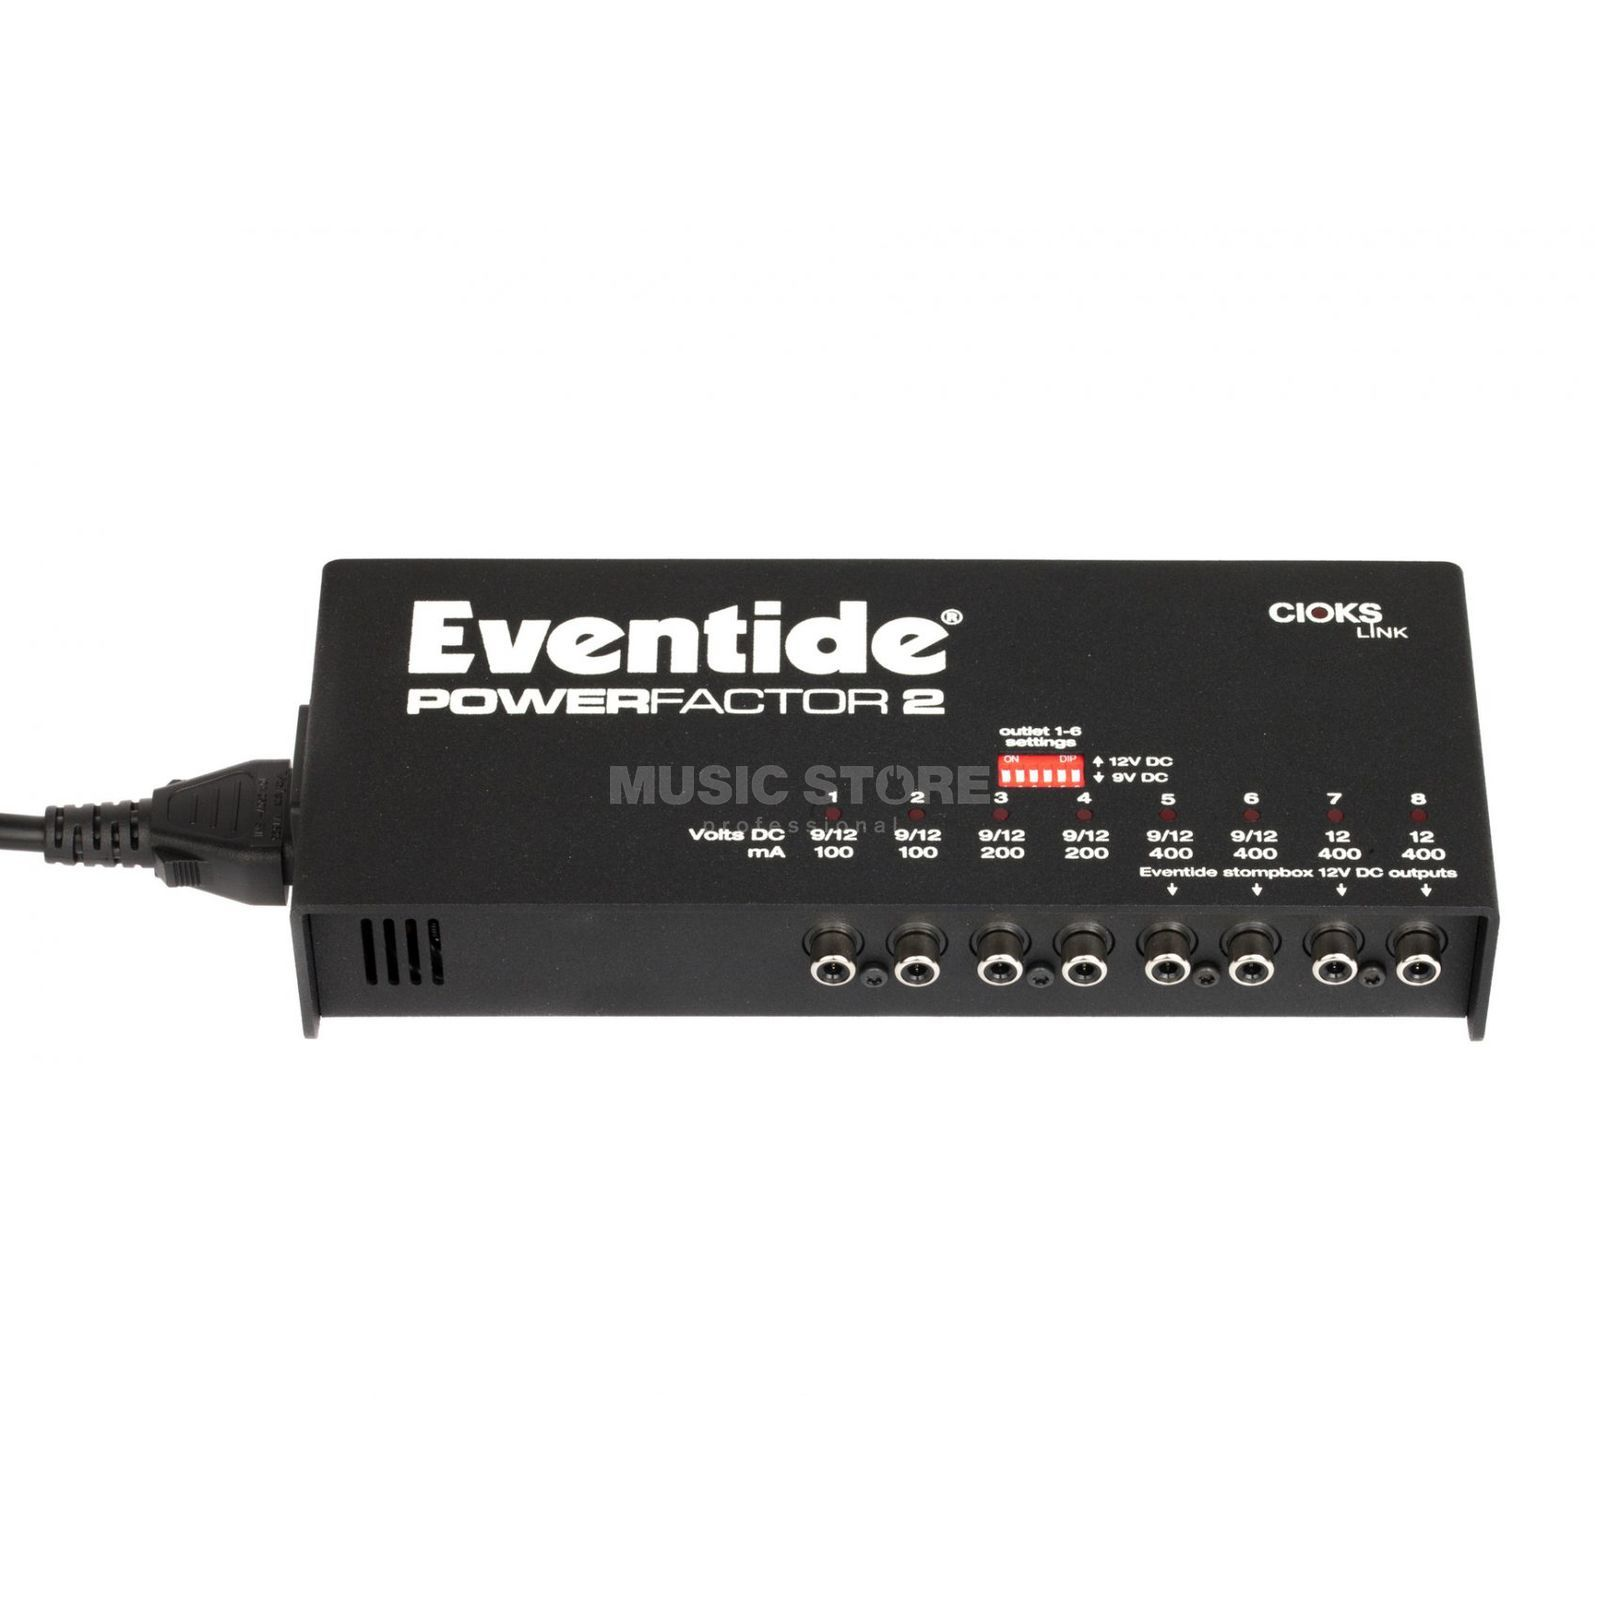 Cioks Eventide Power Factor 2 Produktbillede